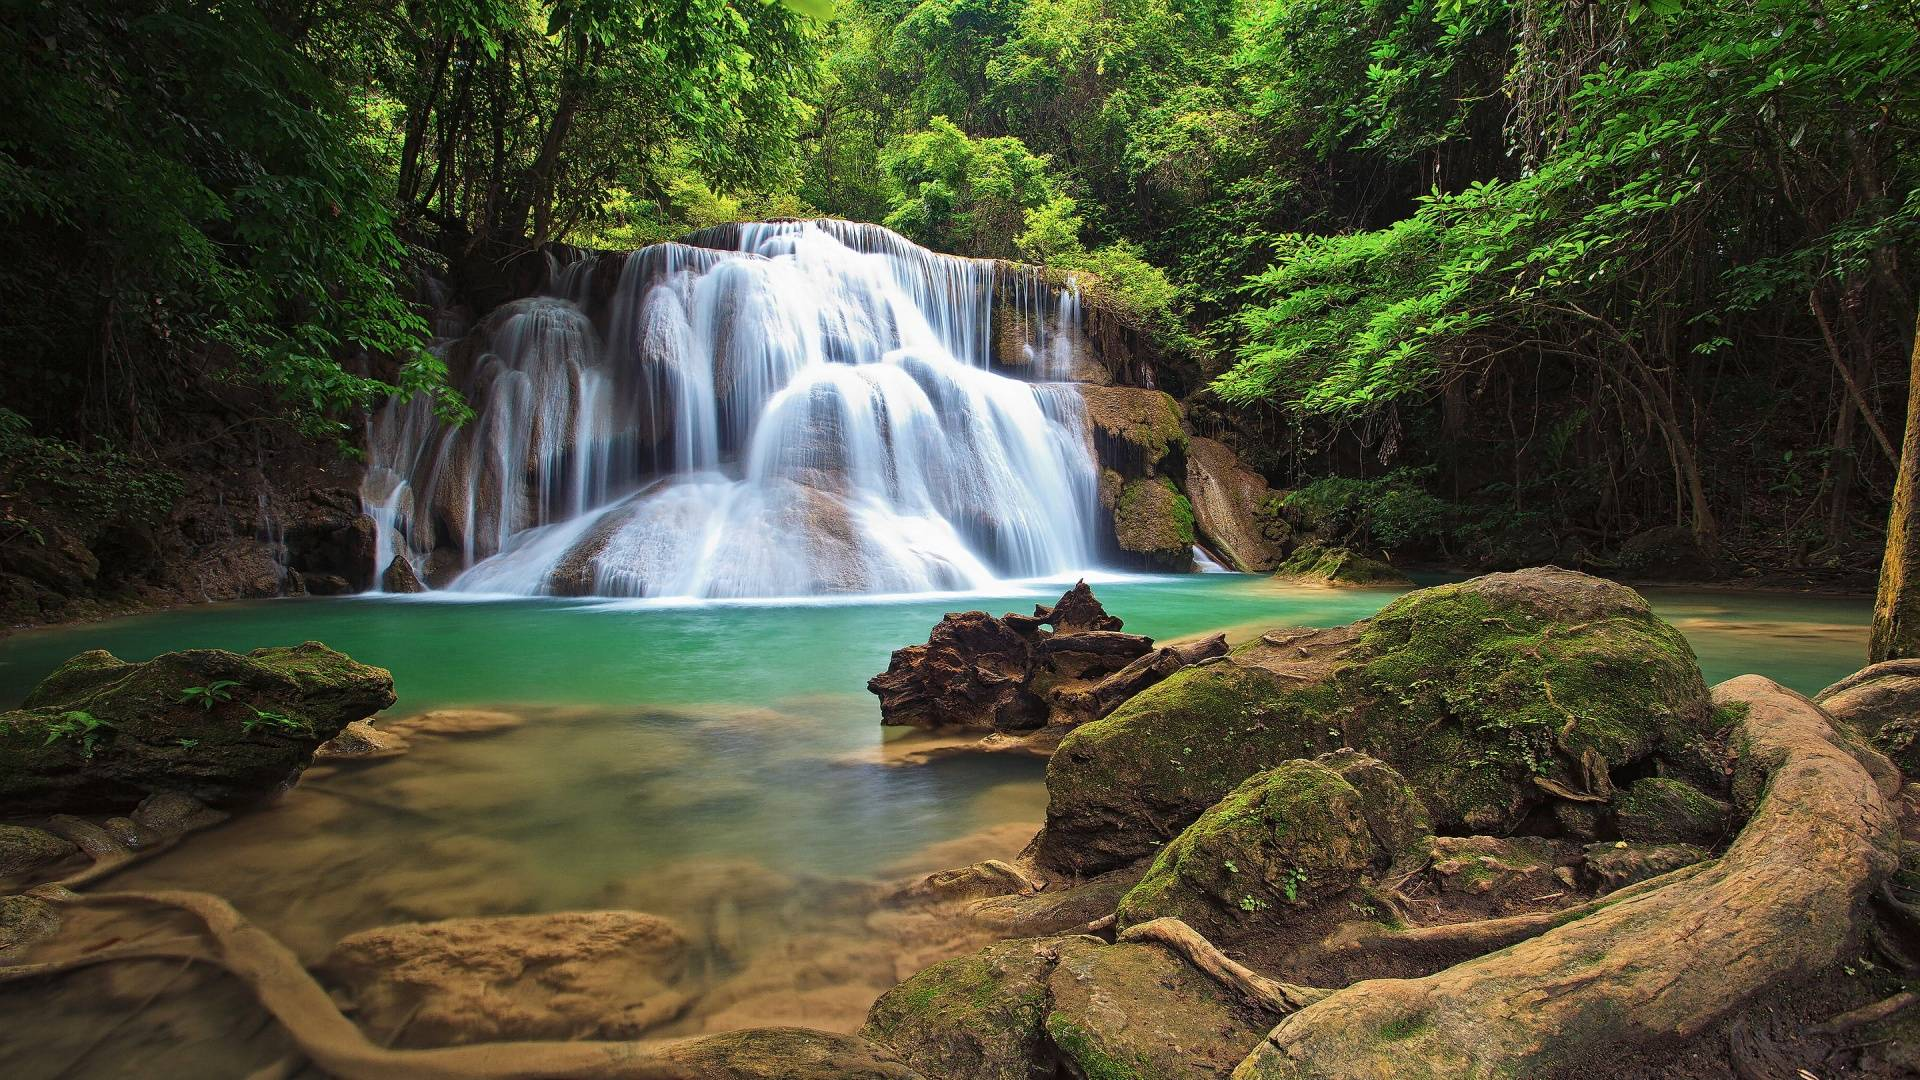 Forest Waterfall Wallpapers - Wallpaper Cave